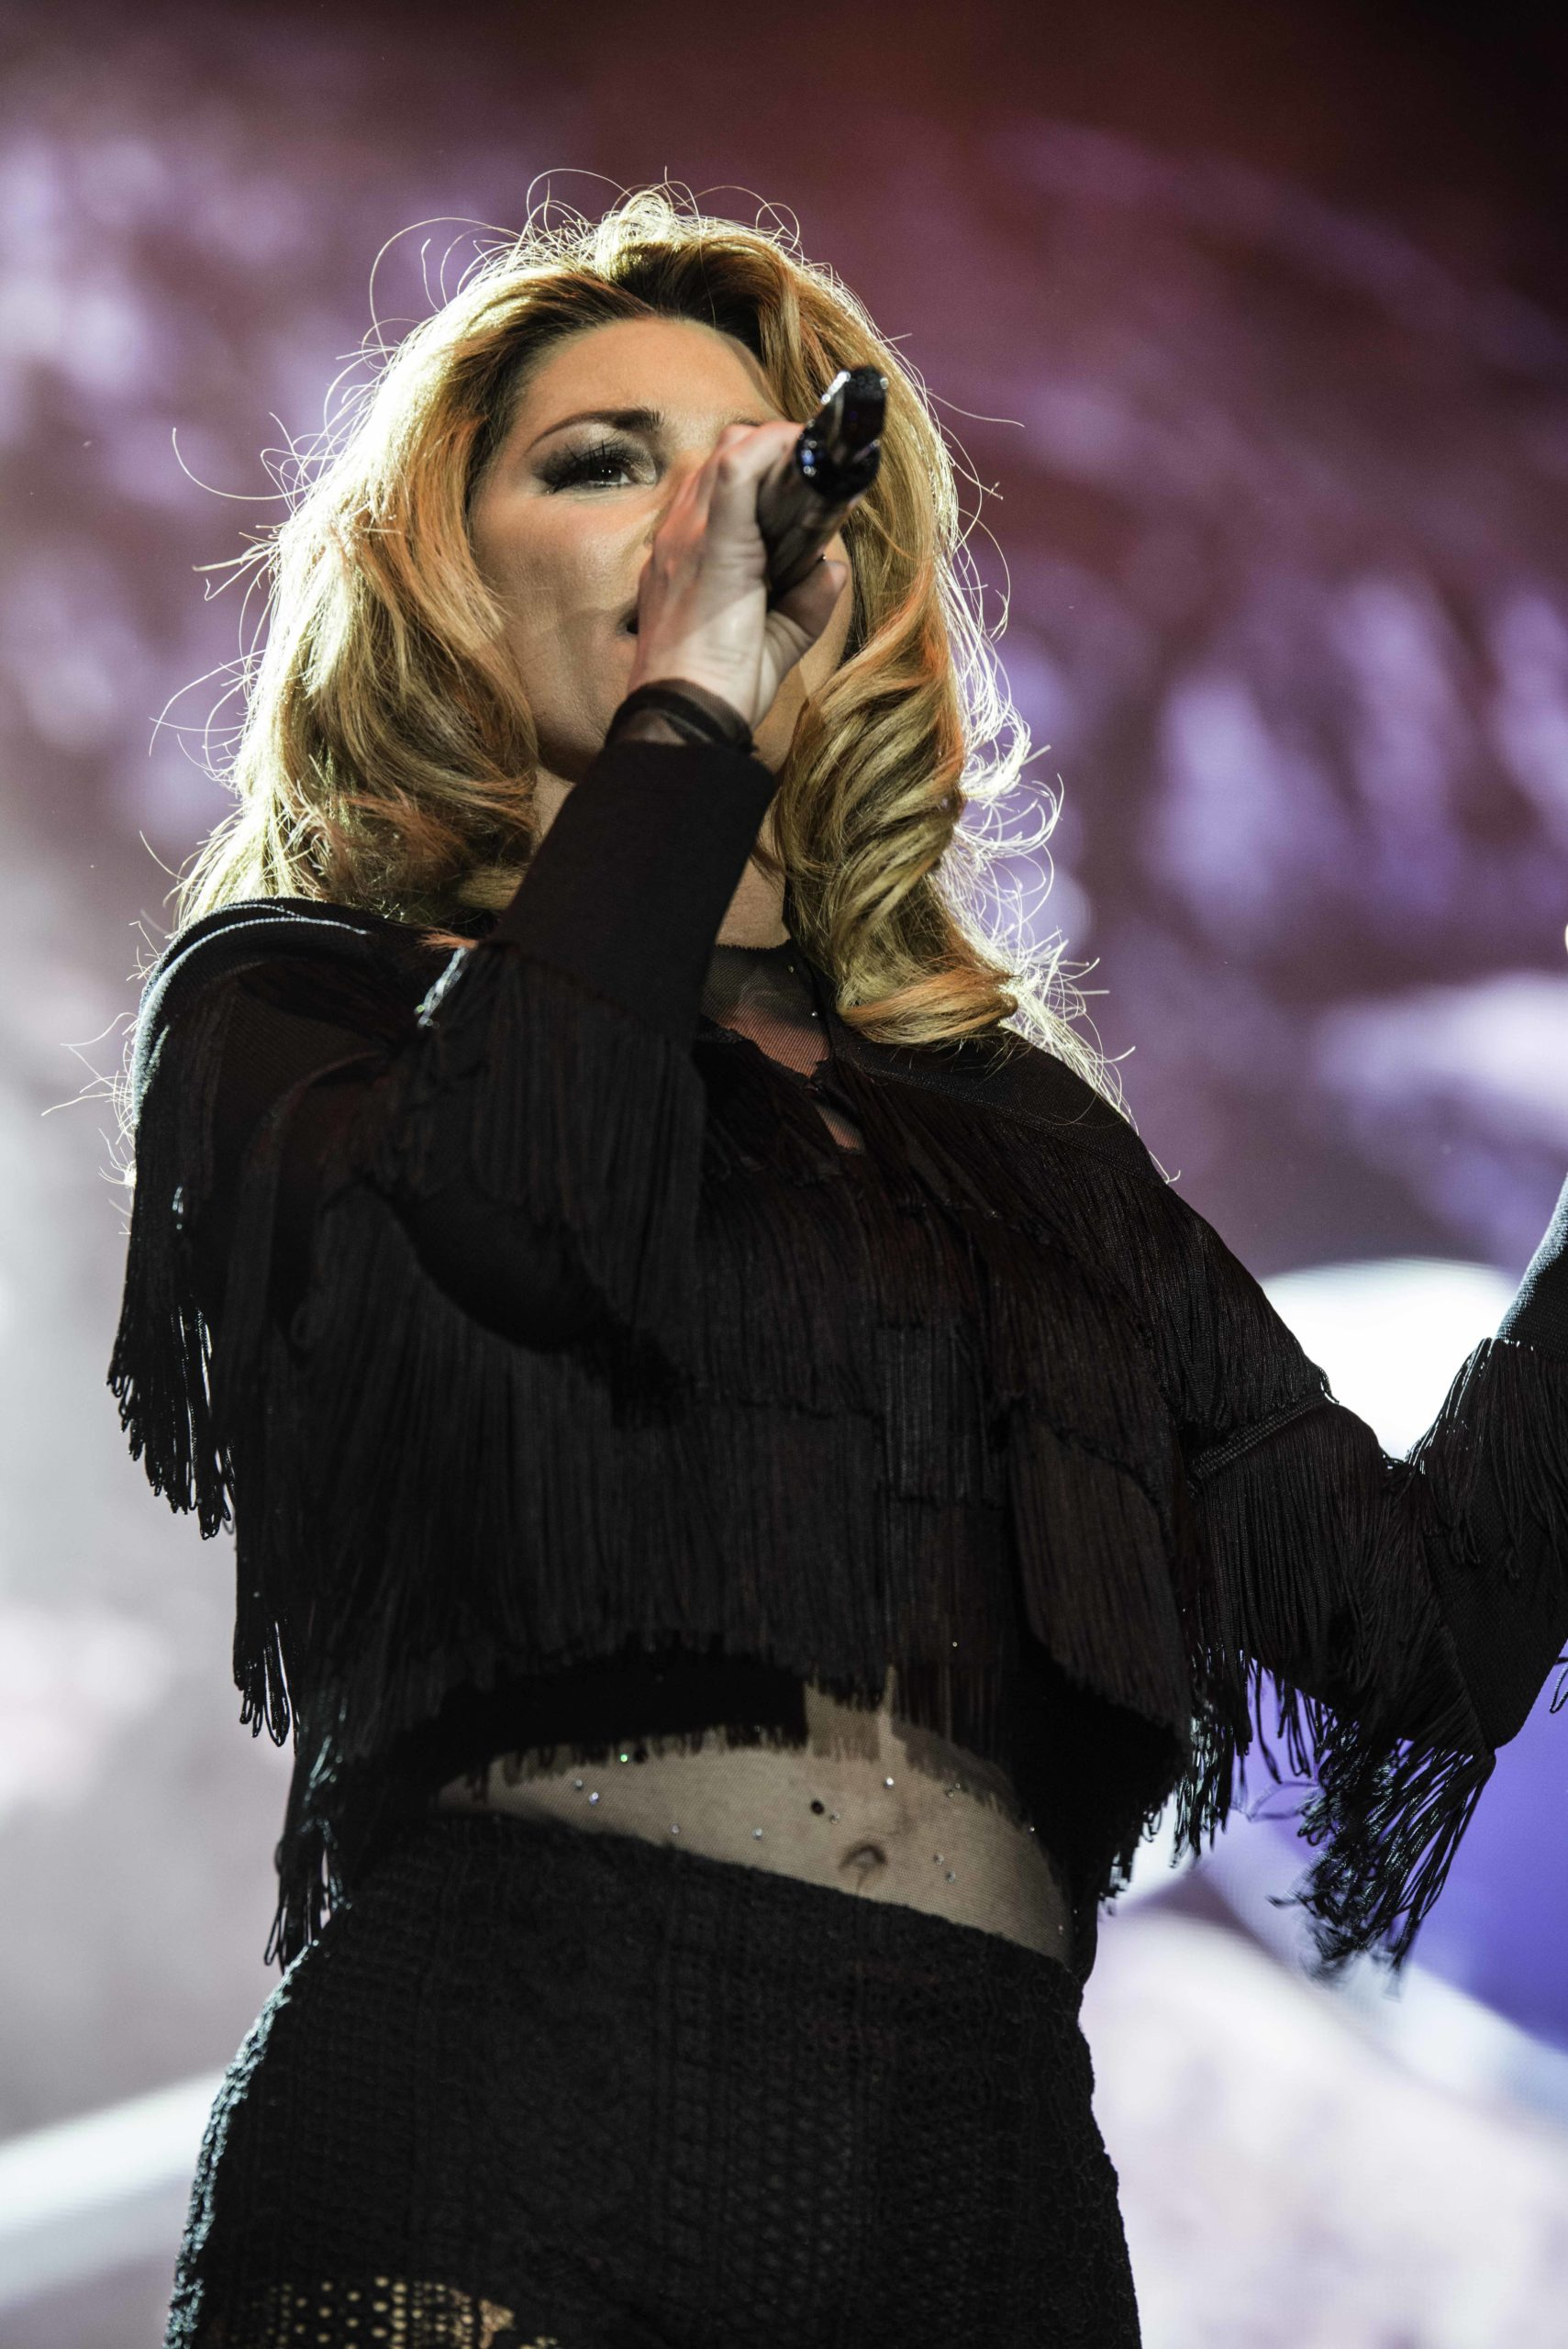 images/Stagecoach 2017 Day 2/Shania Twain 3